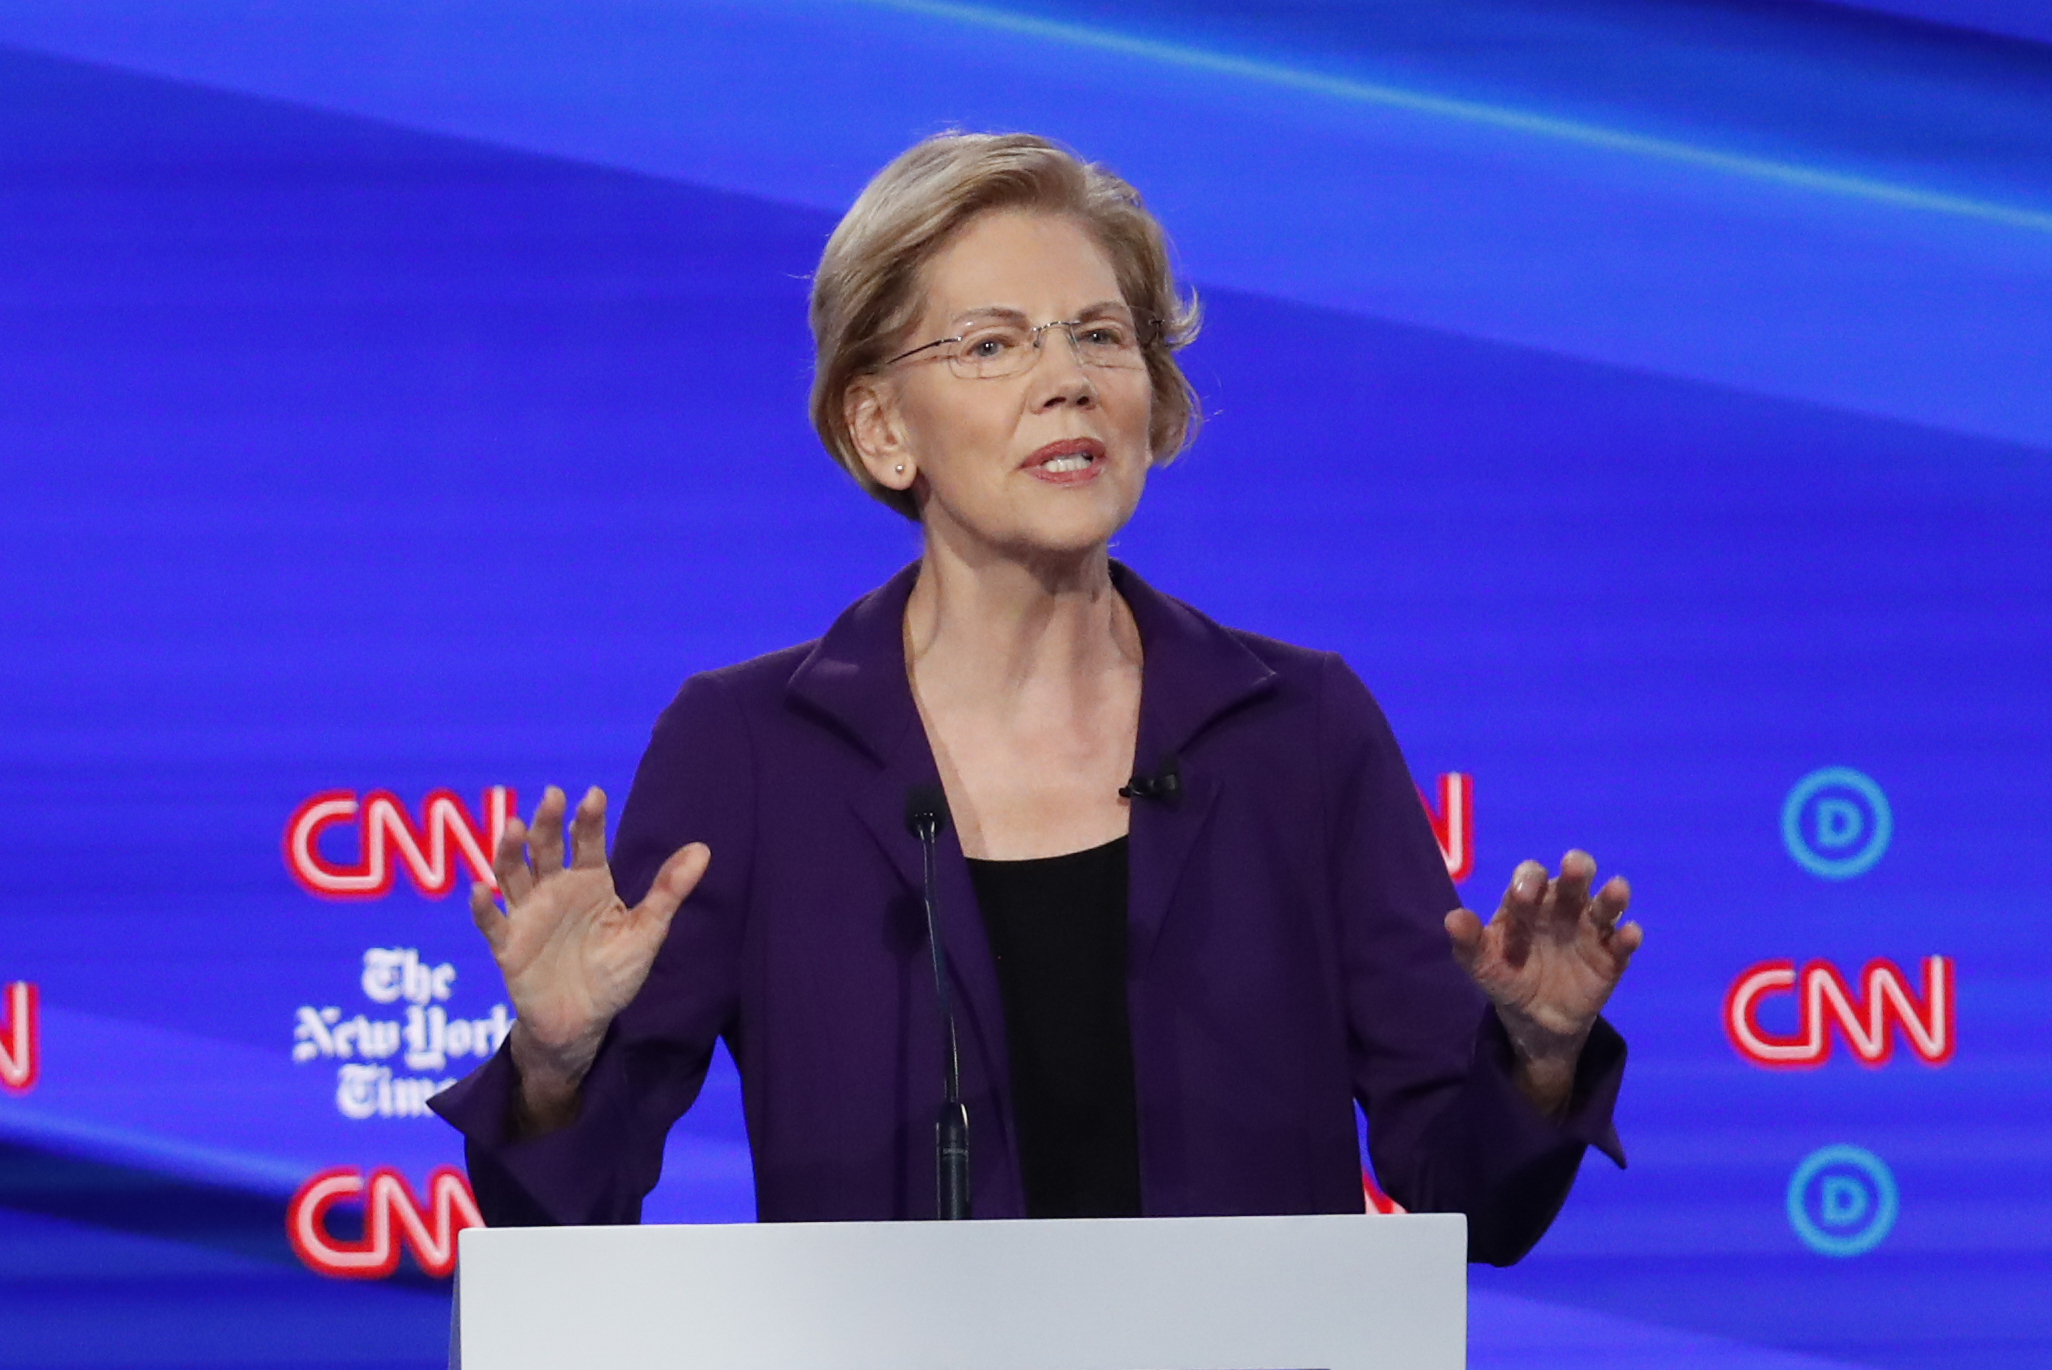 Elizabeth Warren releases plan to overhaul K-12 education